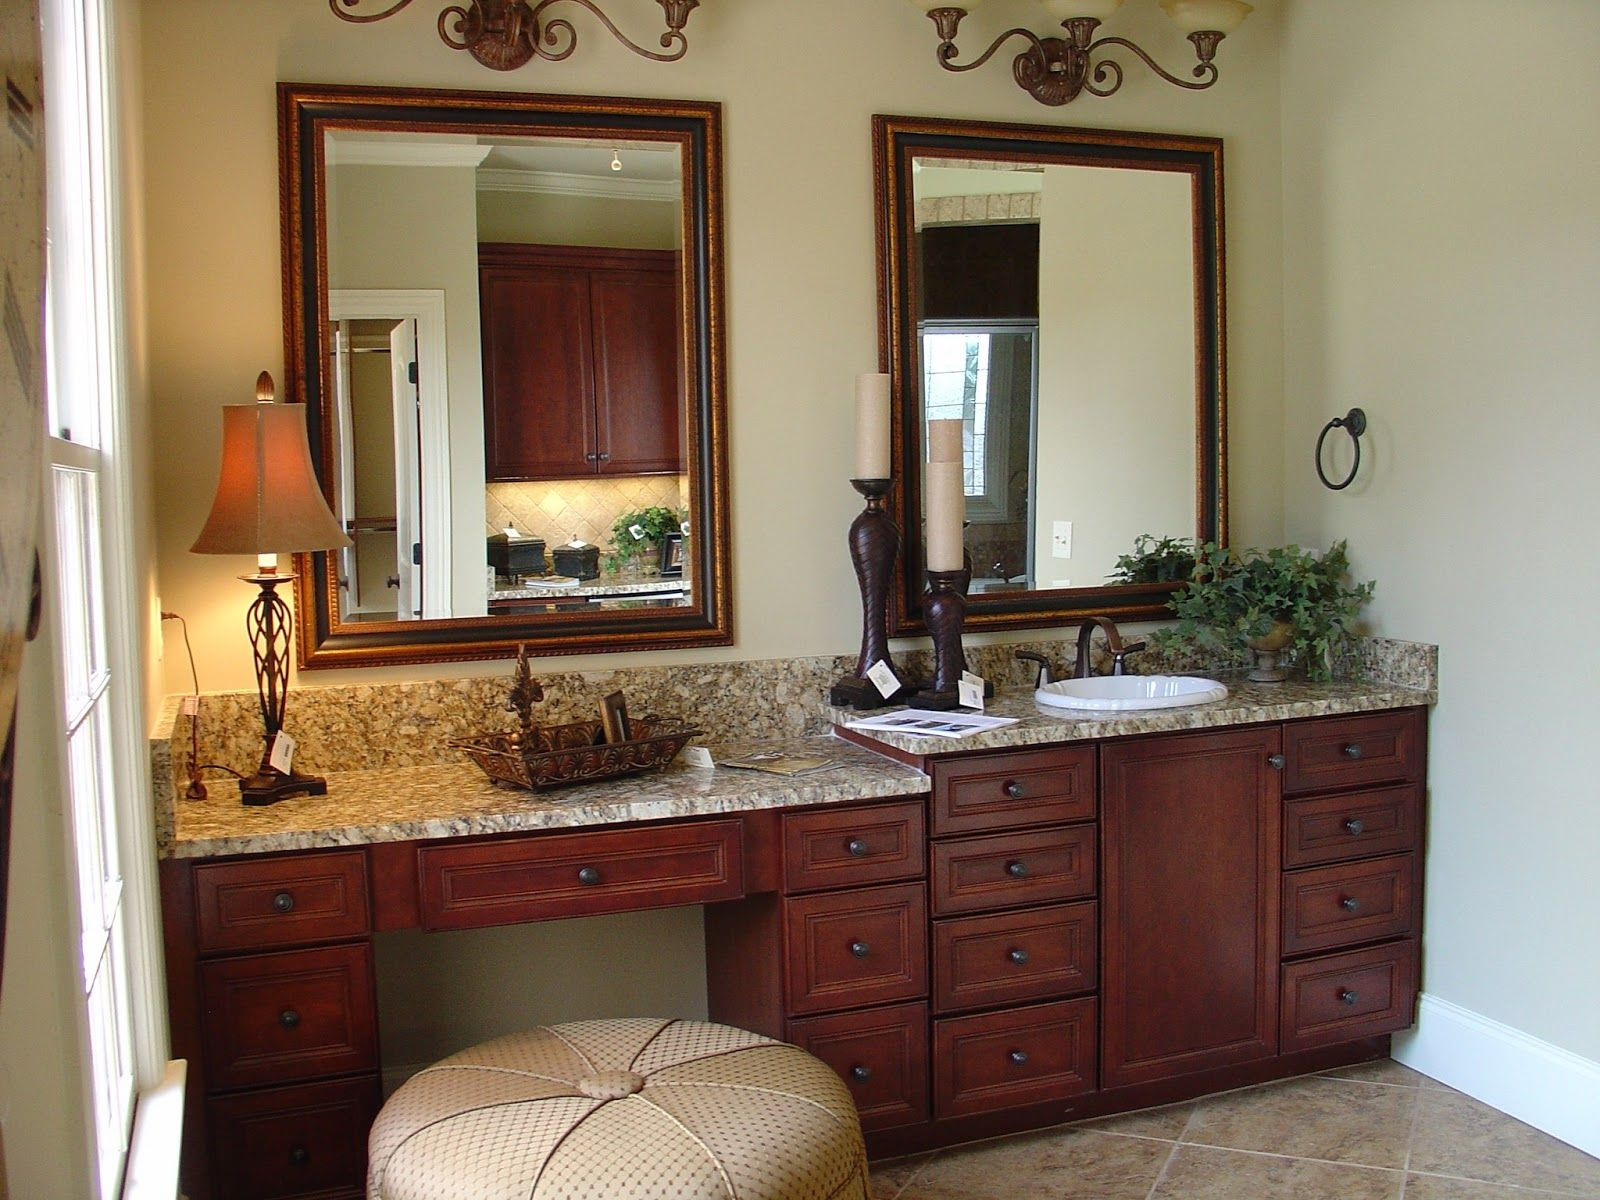 Bathroom Sit Down Vanity One Sink Vanity Within The Master - Bathroom vanities birmingham al